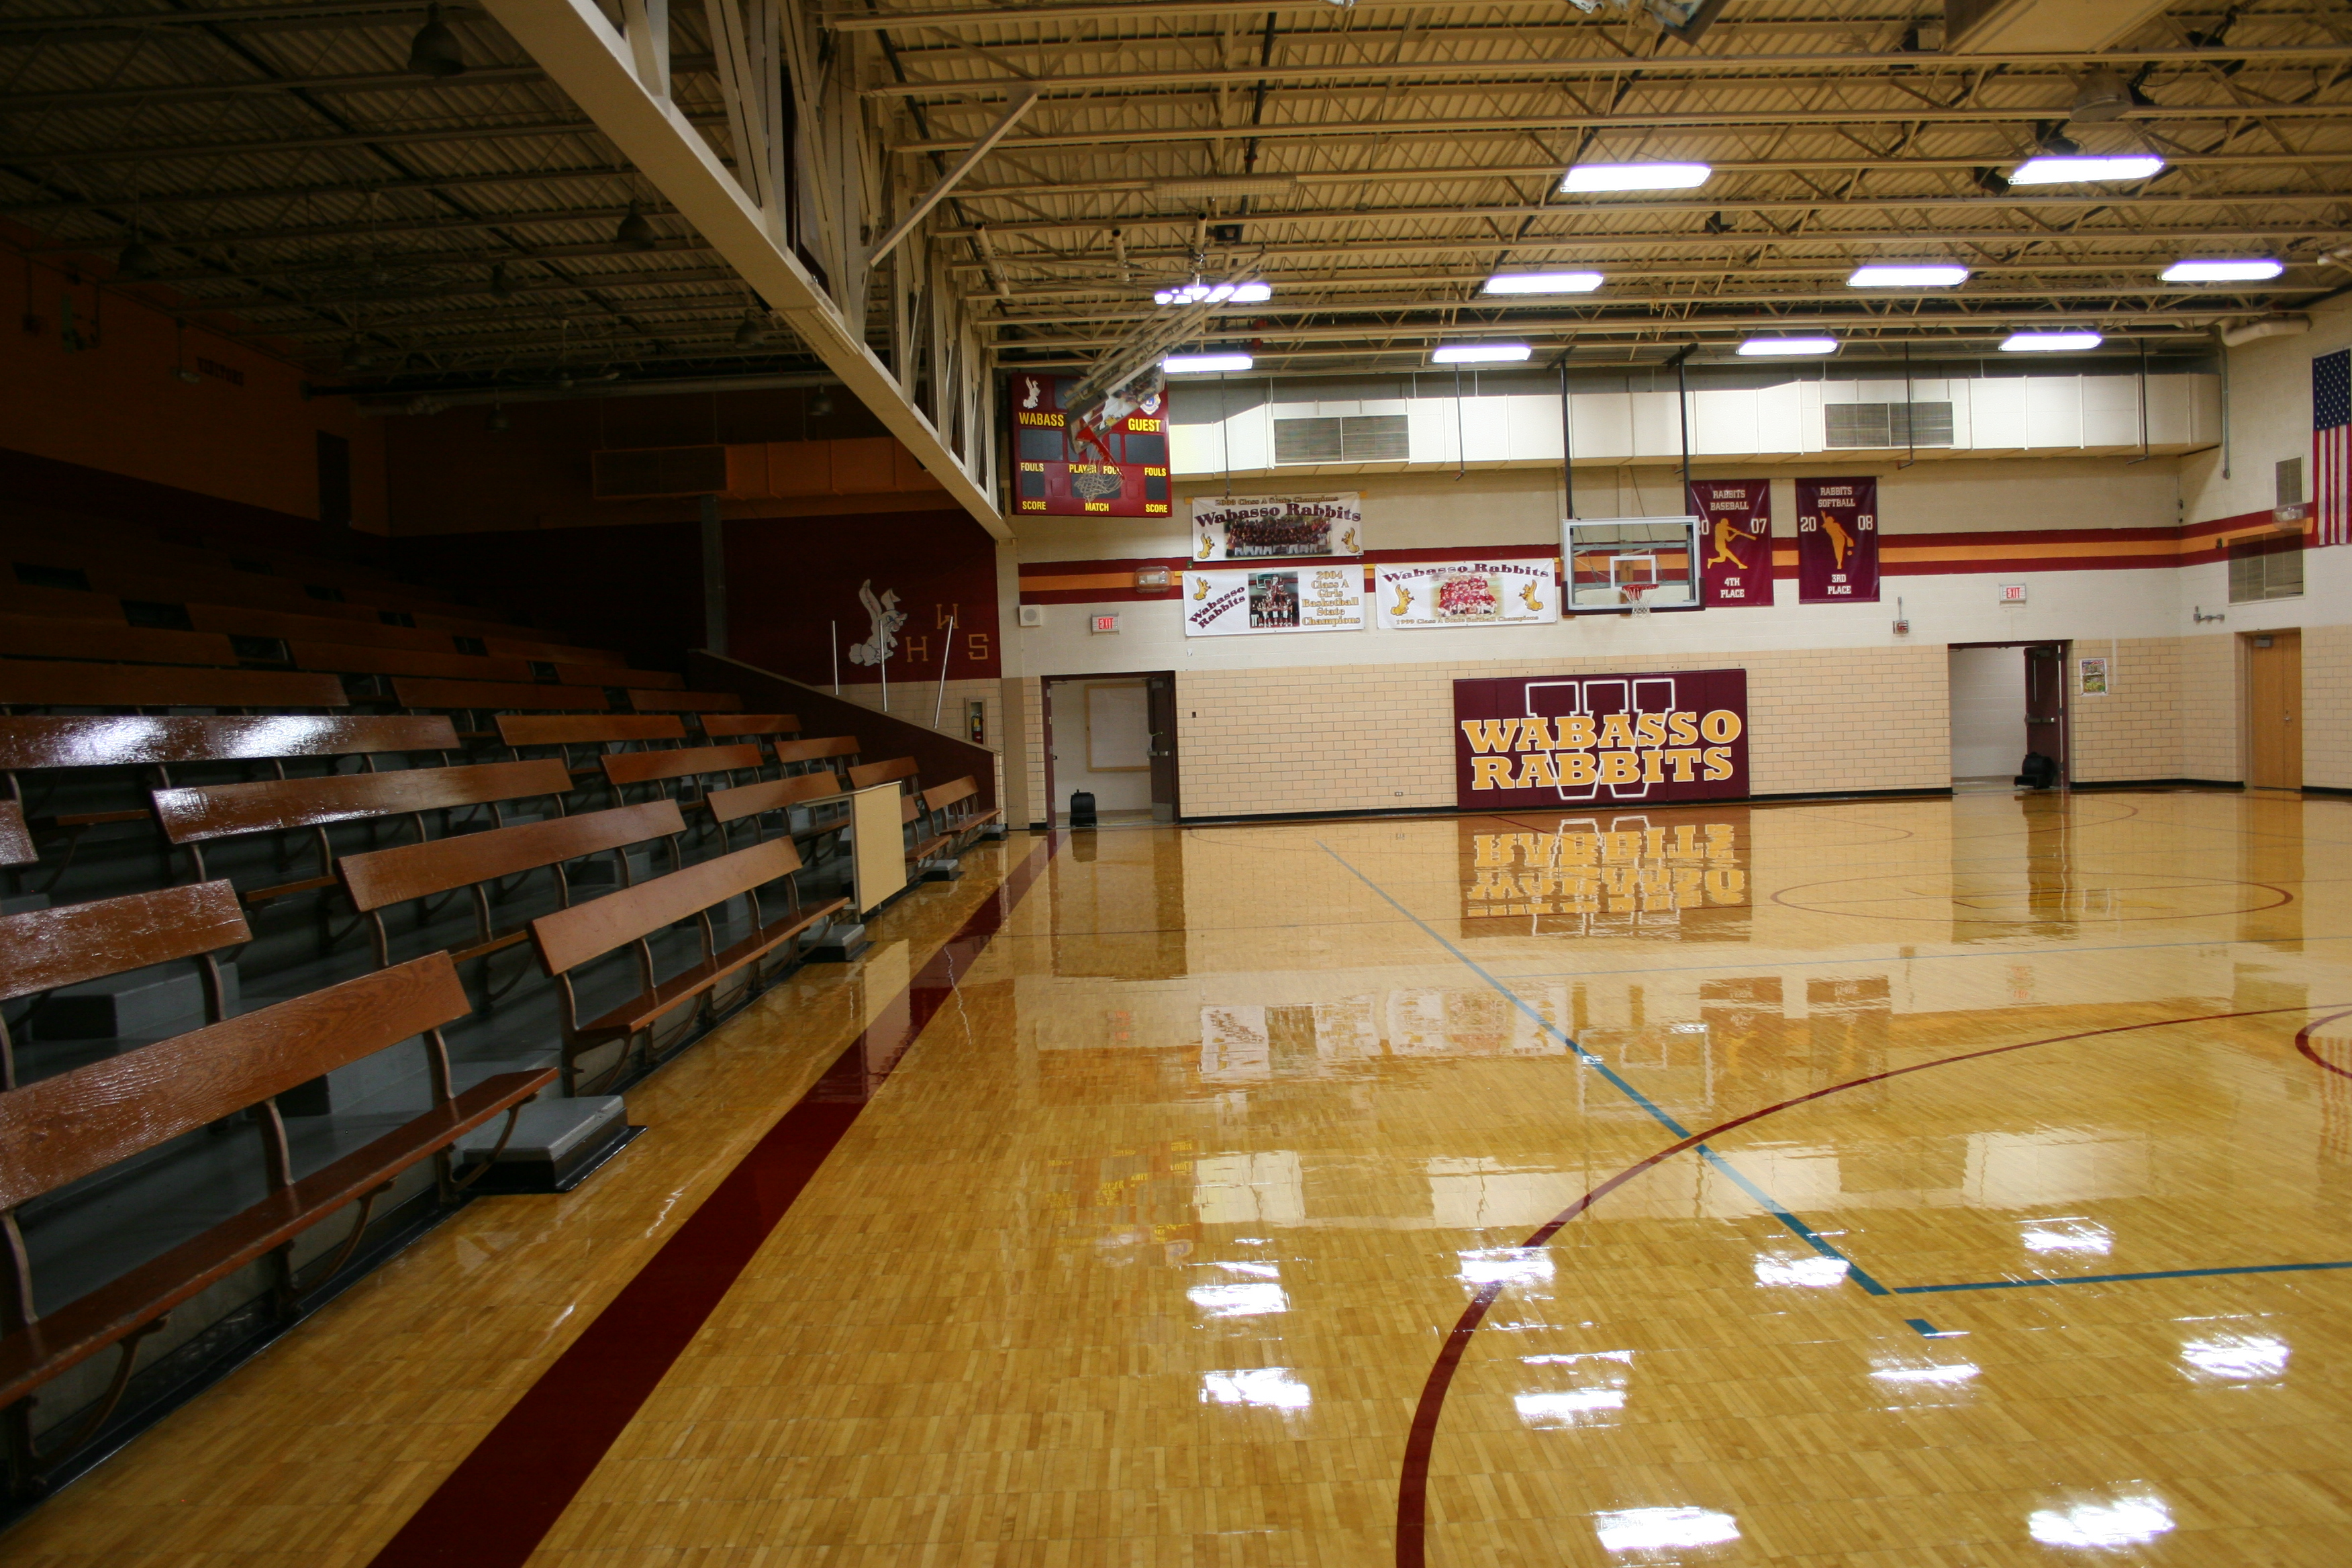 A gym at Wabasso High School, home of the Rabbits. Minnesota Prairie Roots file photo.